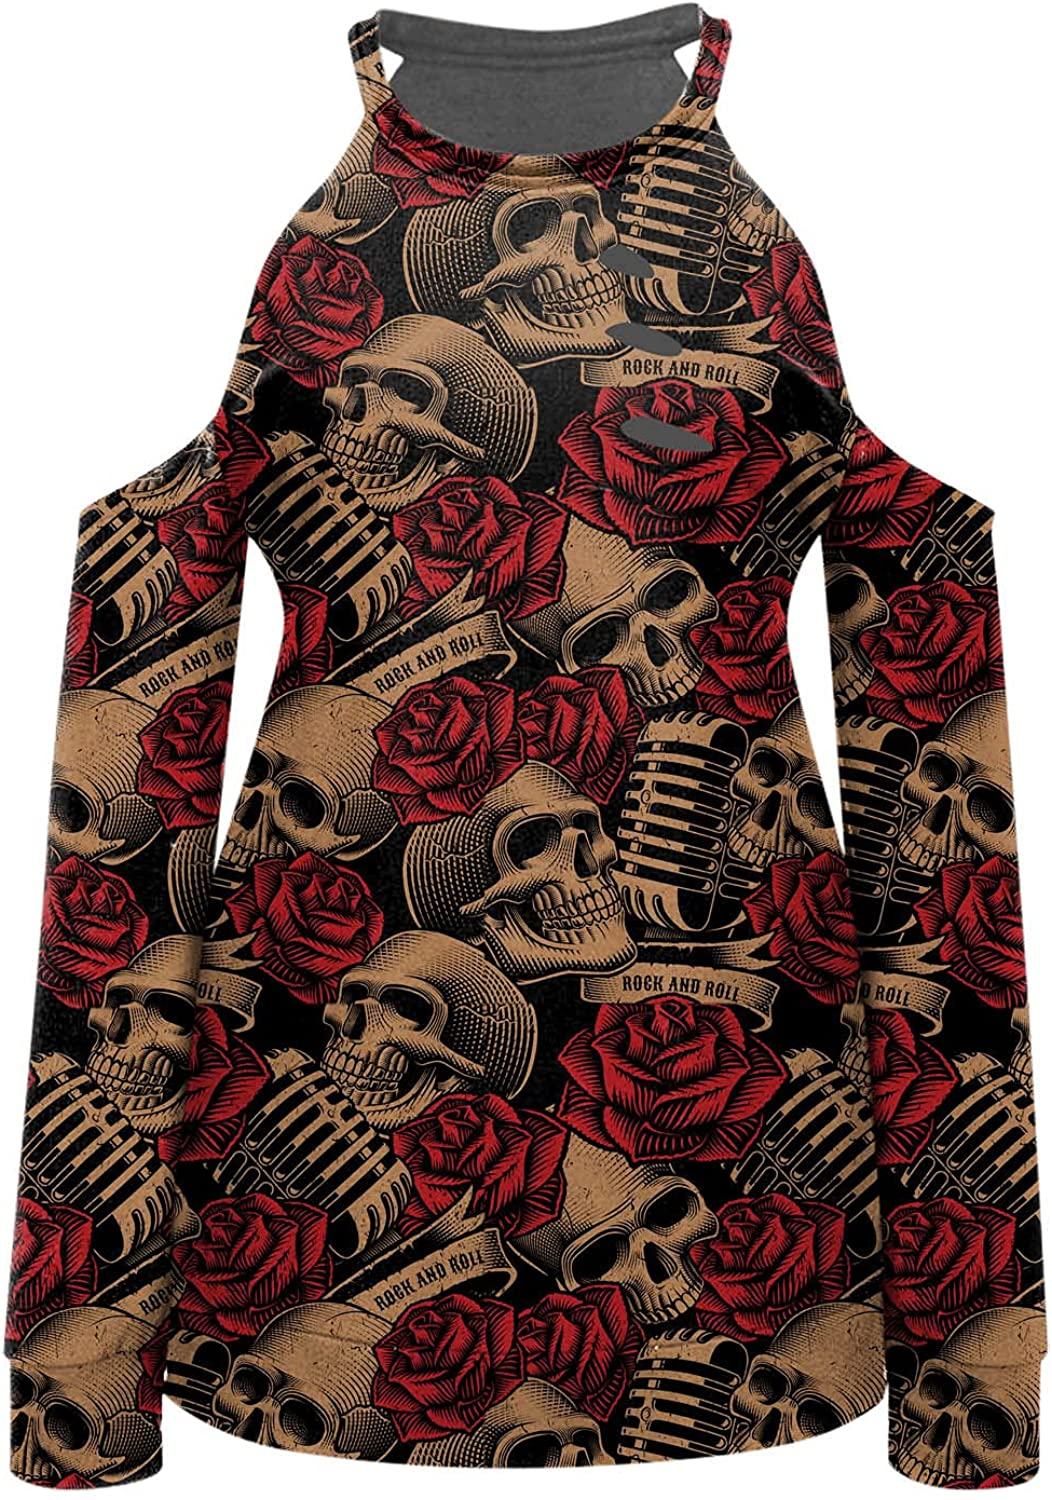 Halloween Blouse Women's Casual Loose Cold Shoulder Tops Halter Neck Hollowed Out Long Sleeve Skull Pumpkin Print Shirts